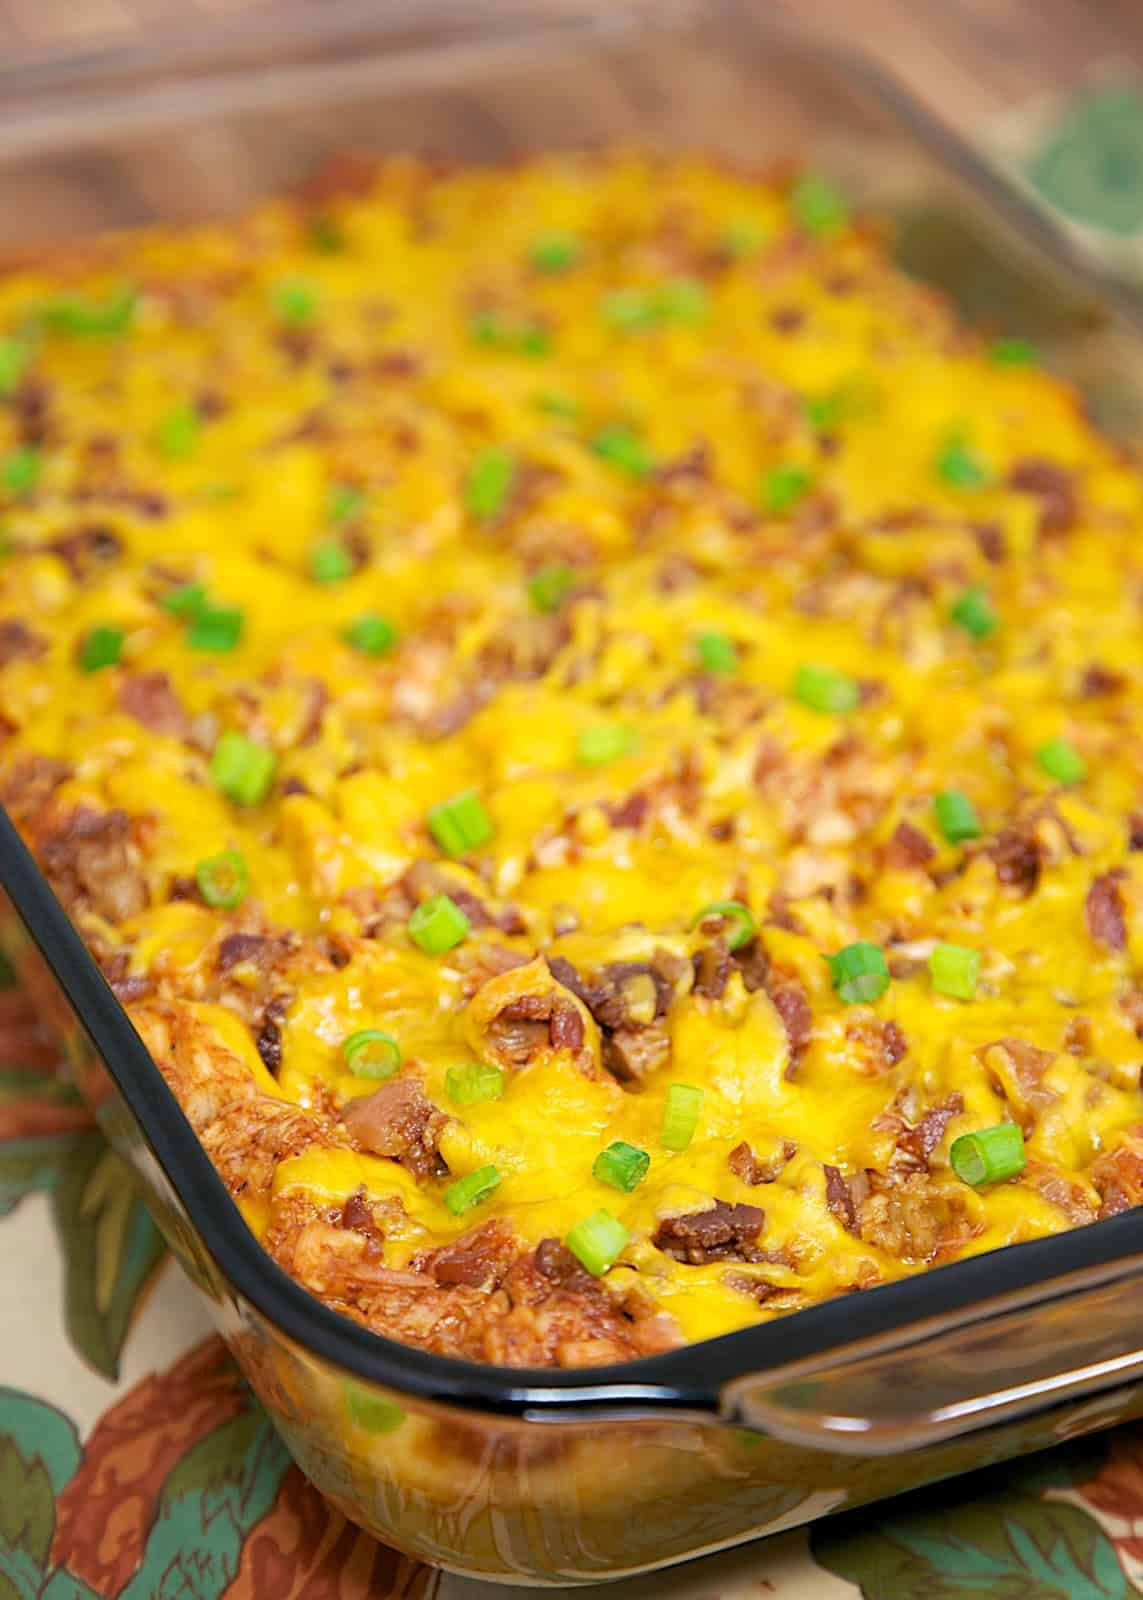 BBQ Chicken & Grits Casserole - cheesy grits topped with bbq chicken, bacon and cheddar. SO delicious!! Can make ahead of time and refrigerate until ready to bake.